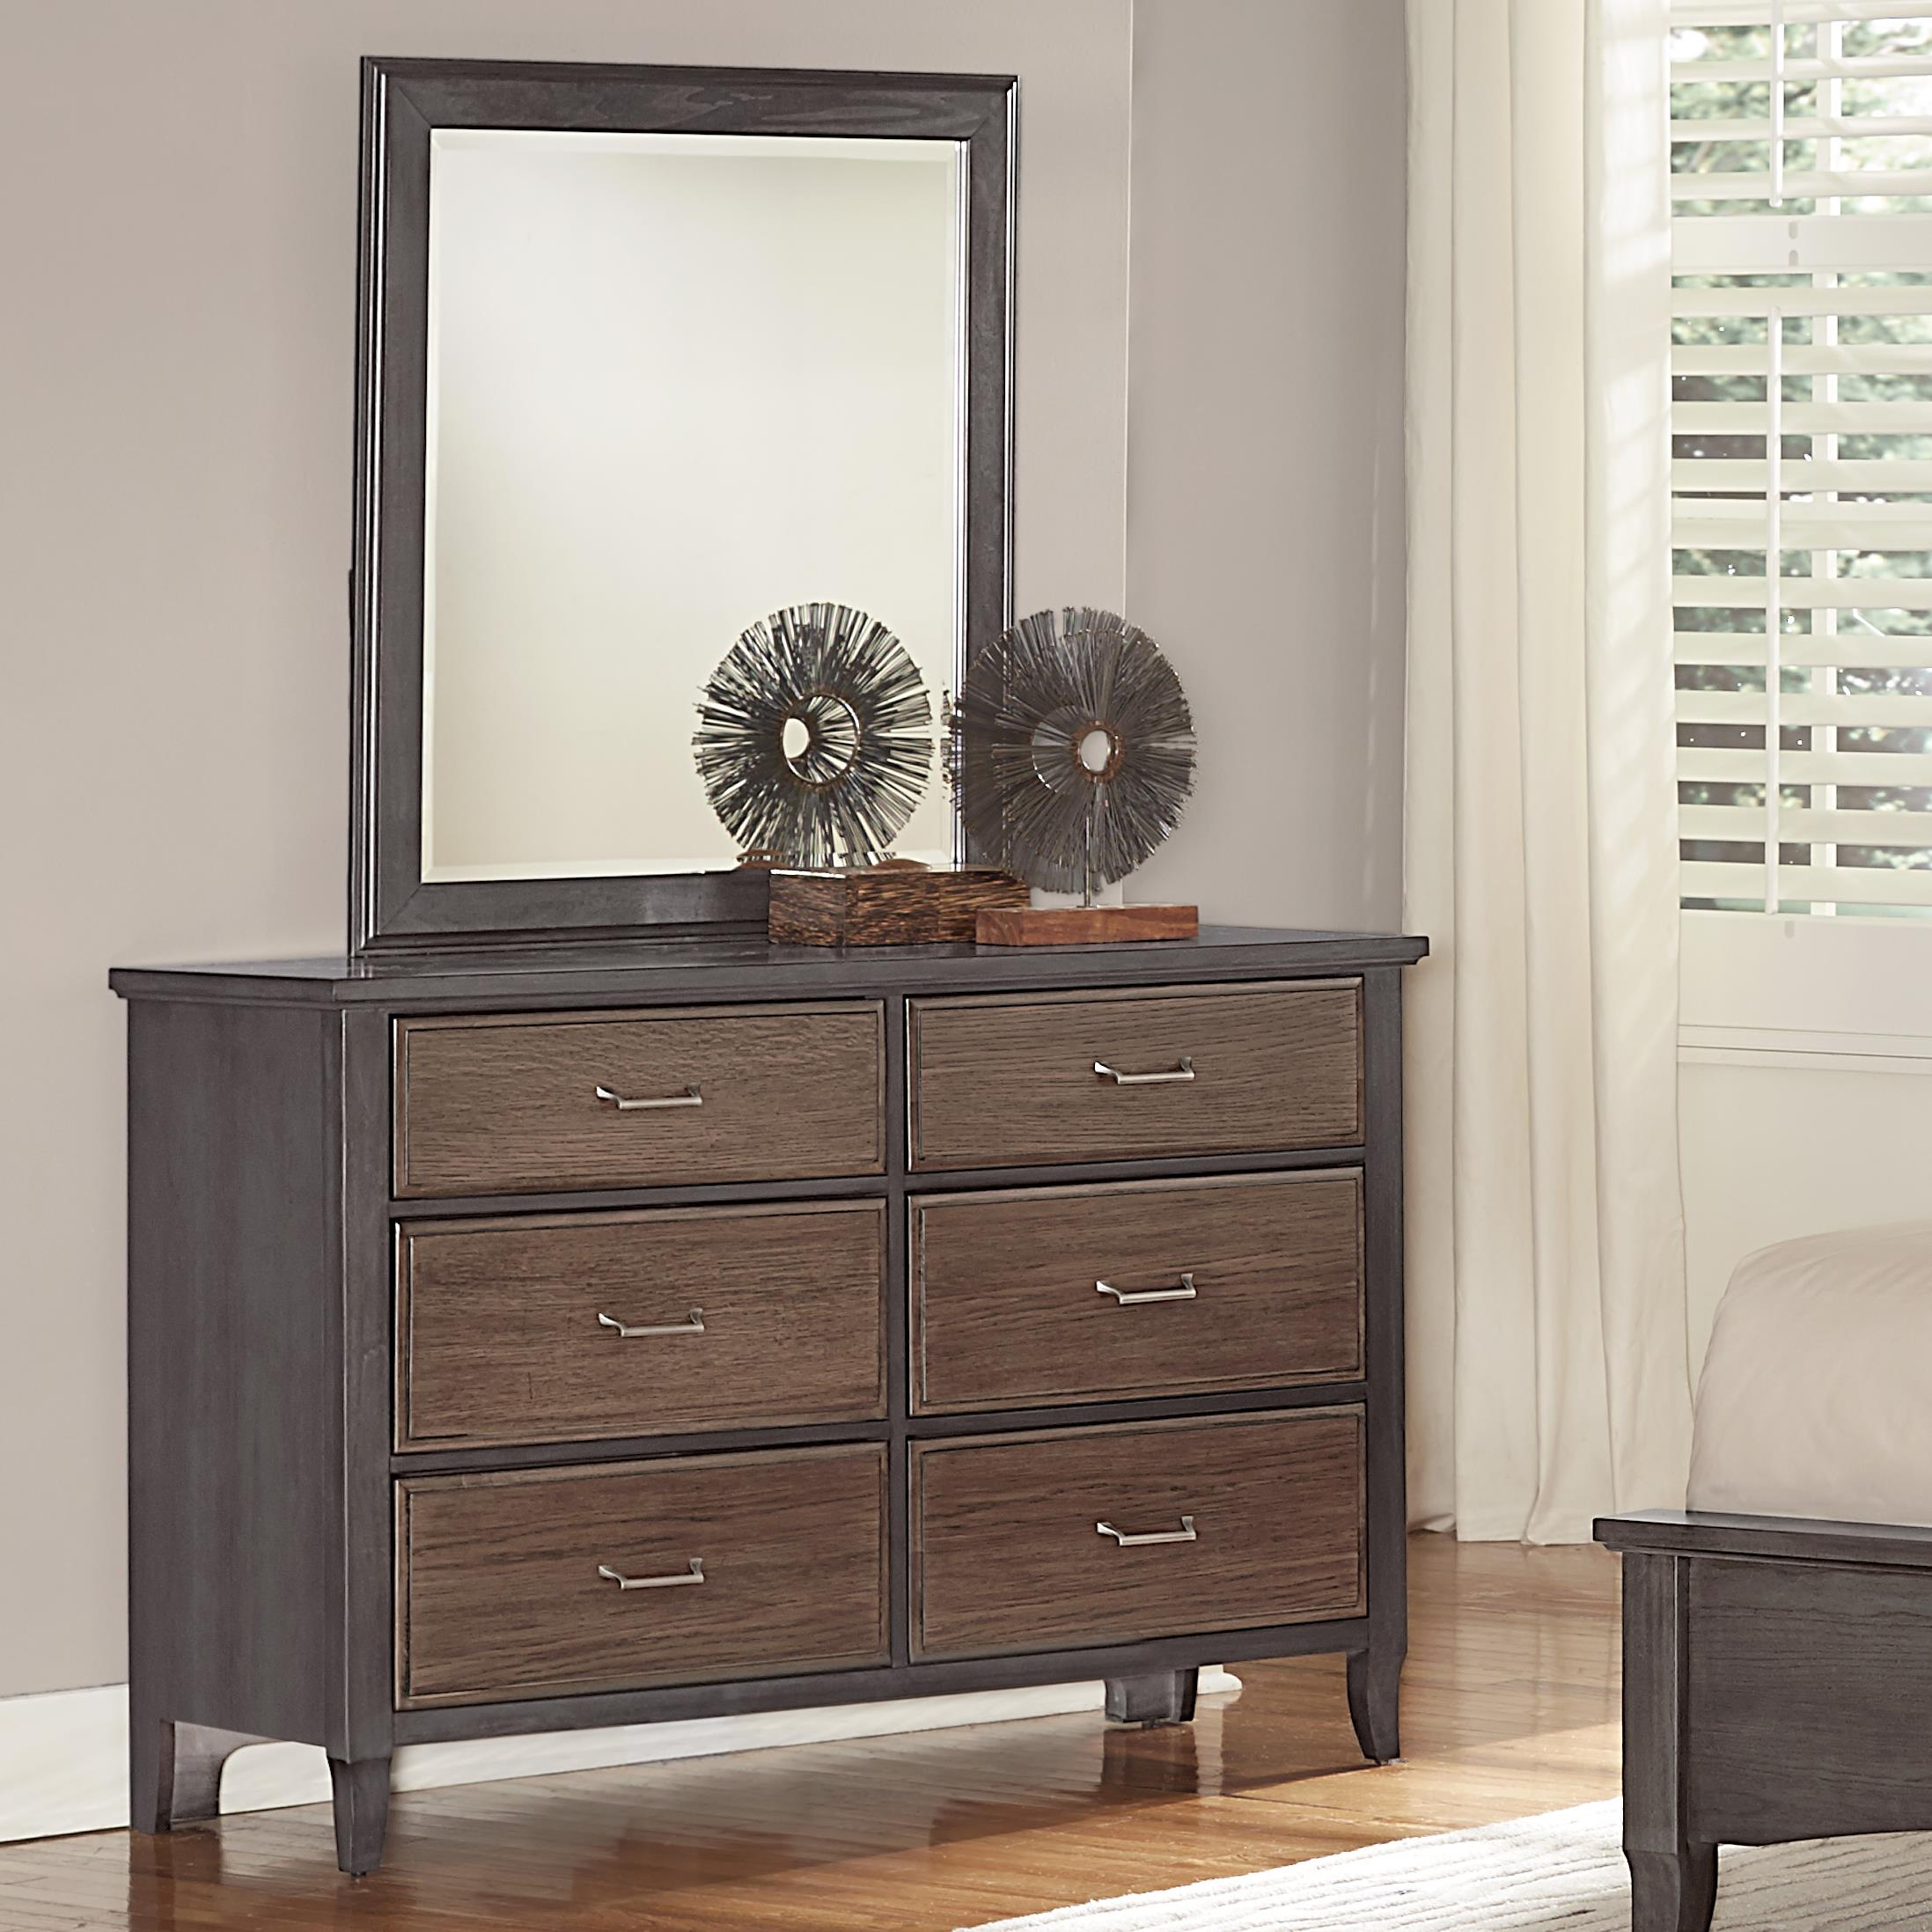 Vaughan Bassett Commentary Dresser - 6 drawers & Youth Landscape Mirror - Item Number: 394-000+442